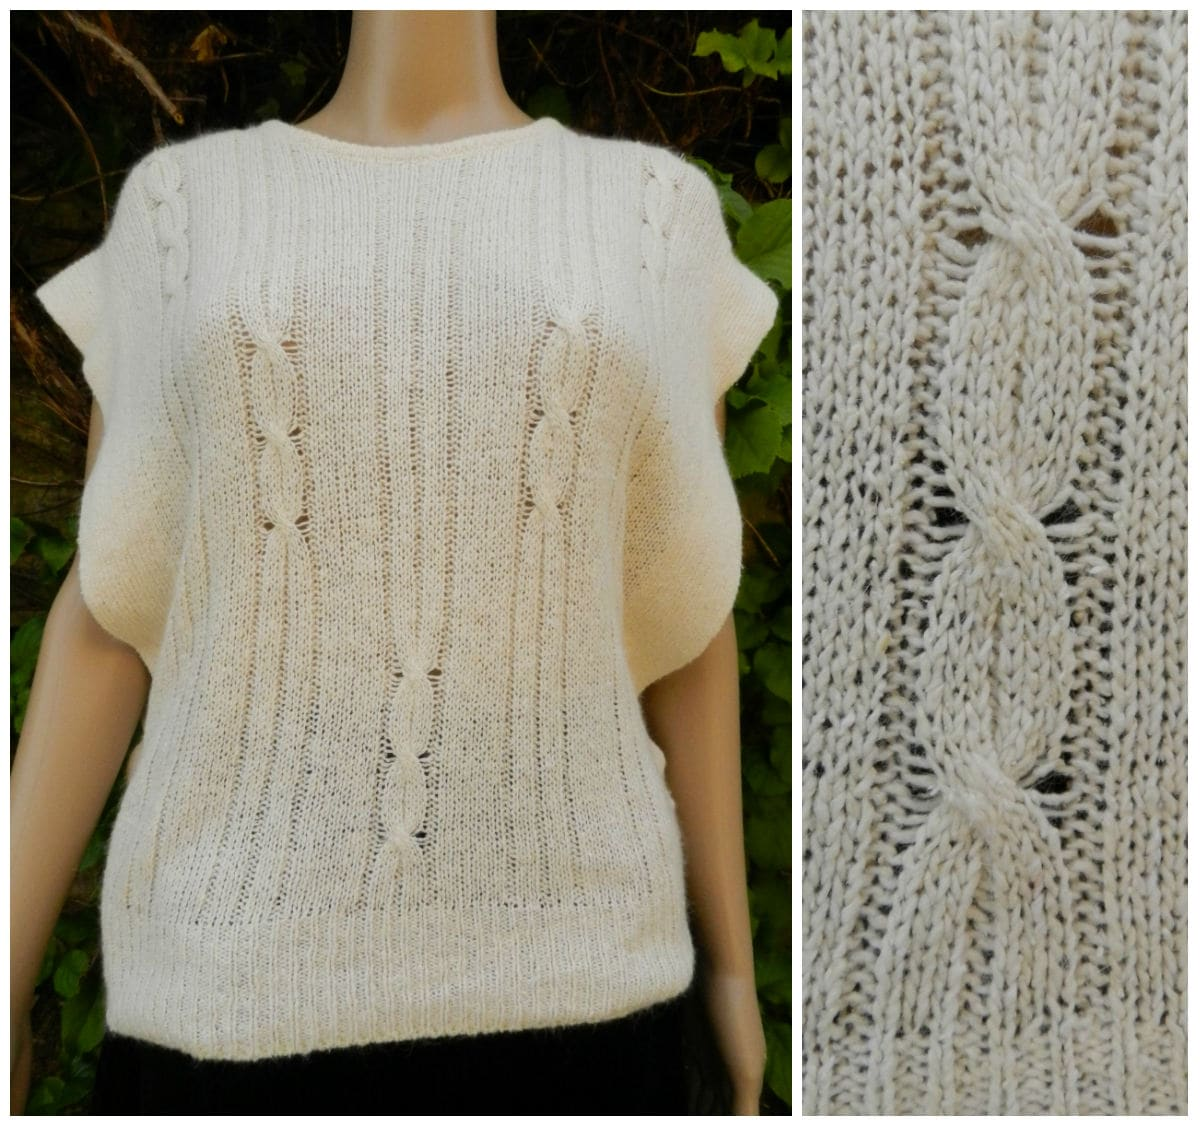 80s SILK ANGORA soft finely knitted cream sleeveless sweater top slit sides cable knit M  L